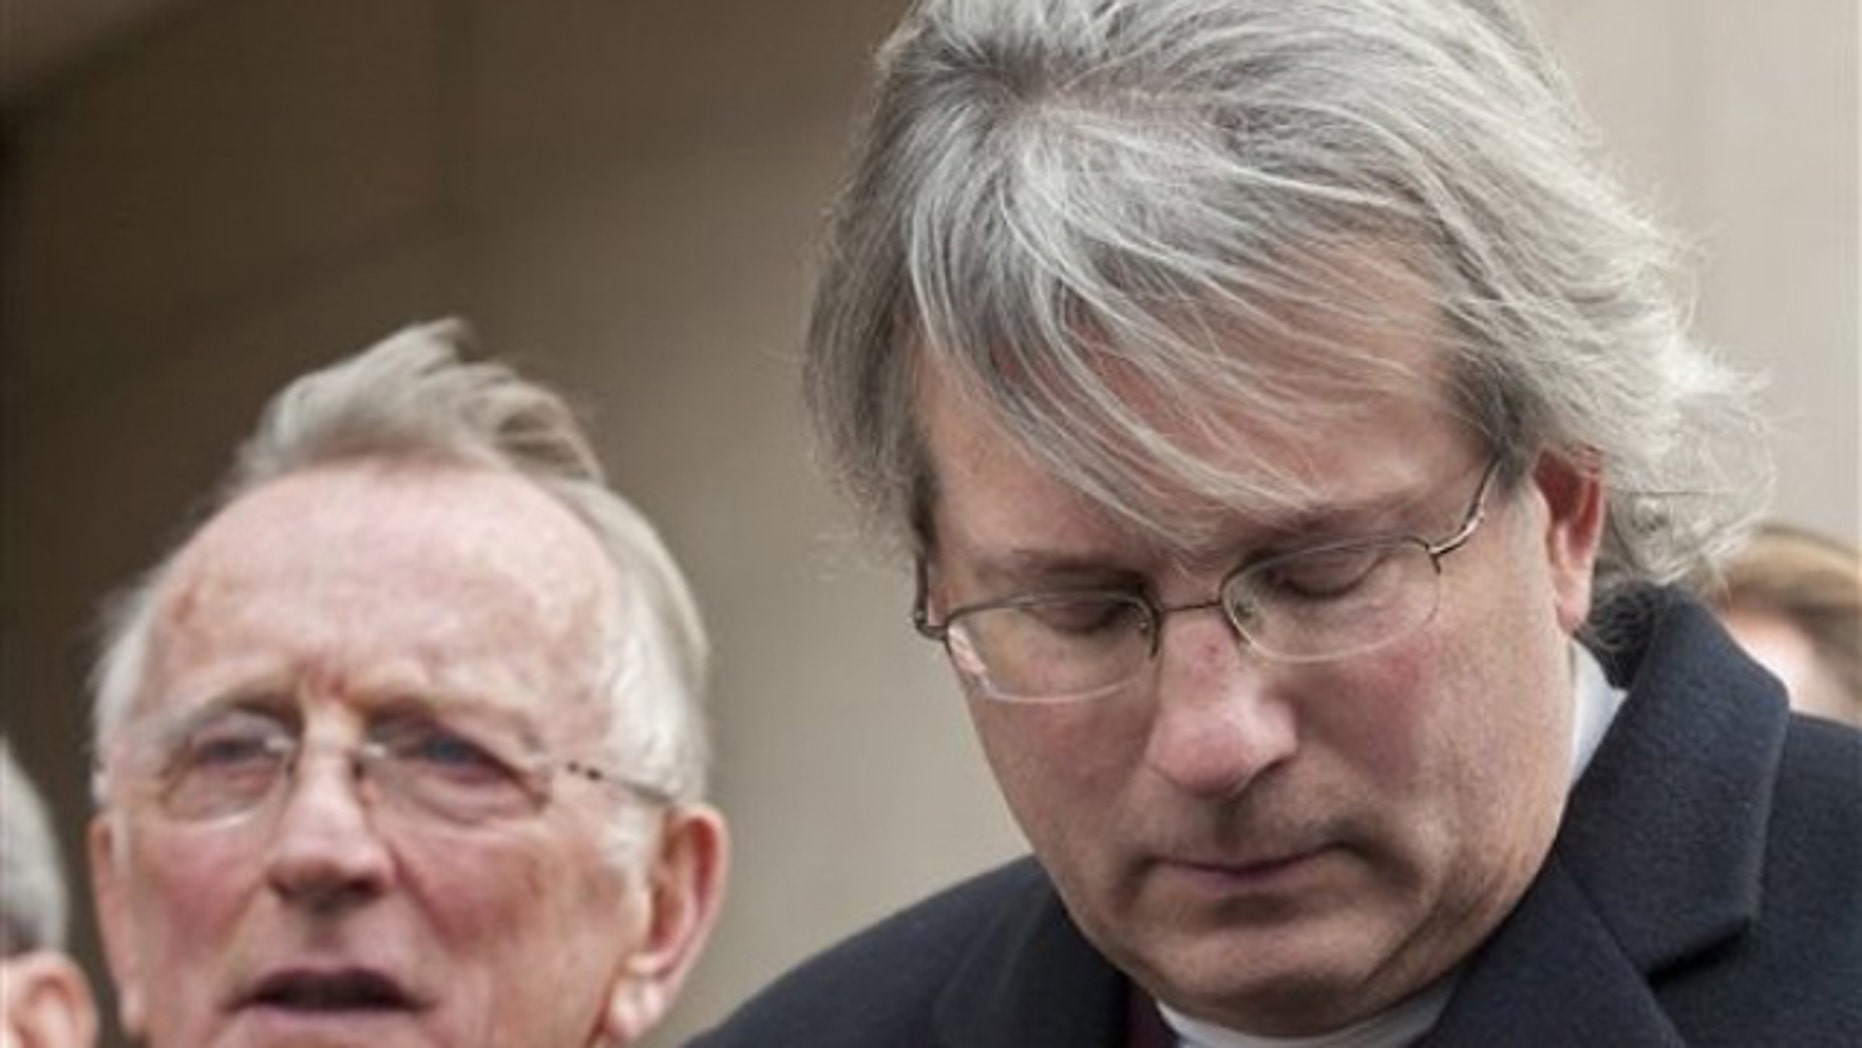 Nov. 8: Dr. William A. Petit Jr. , right, and his father William Petit, left, react to the sentence given to Steven Hayes following jury deliberations at the New Haven, Conn. , County Courthouse (AP).